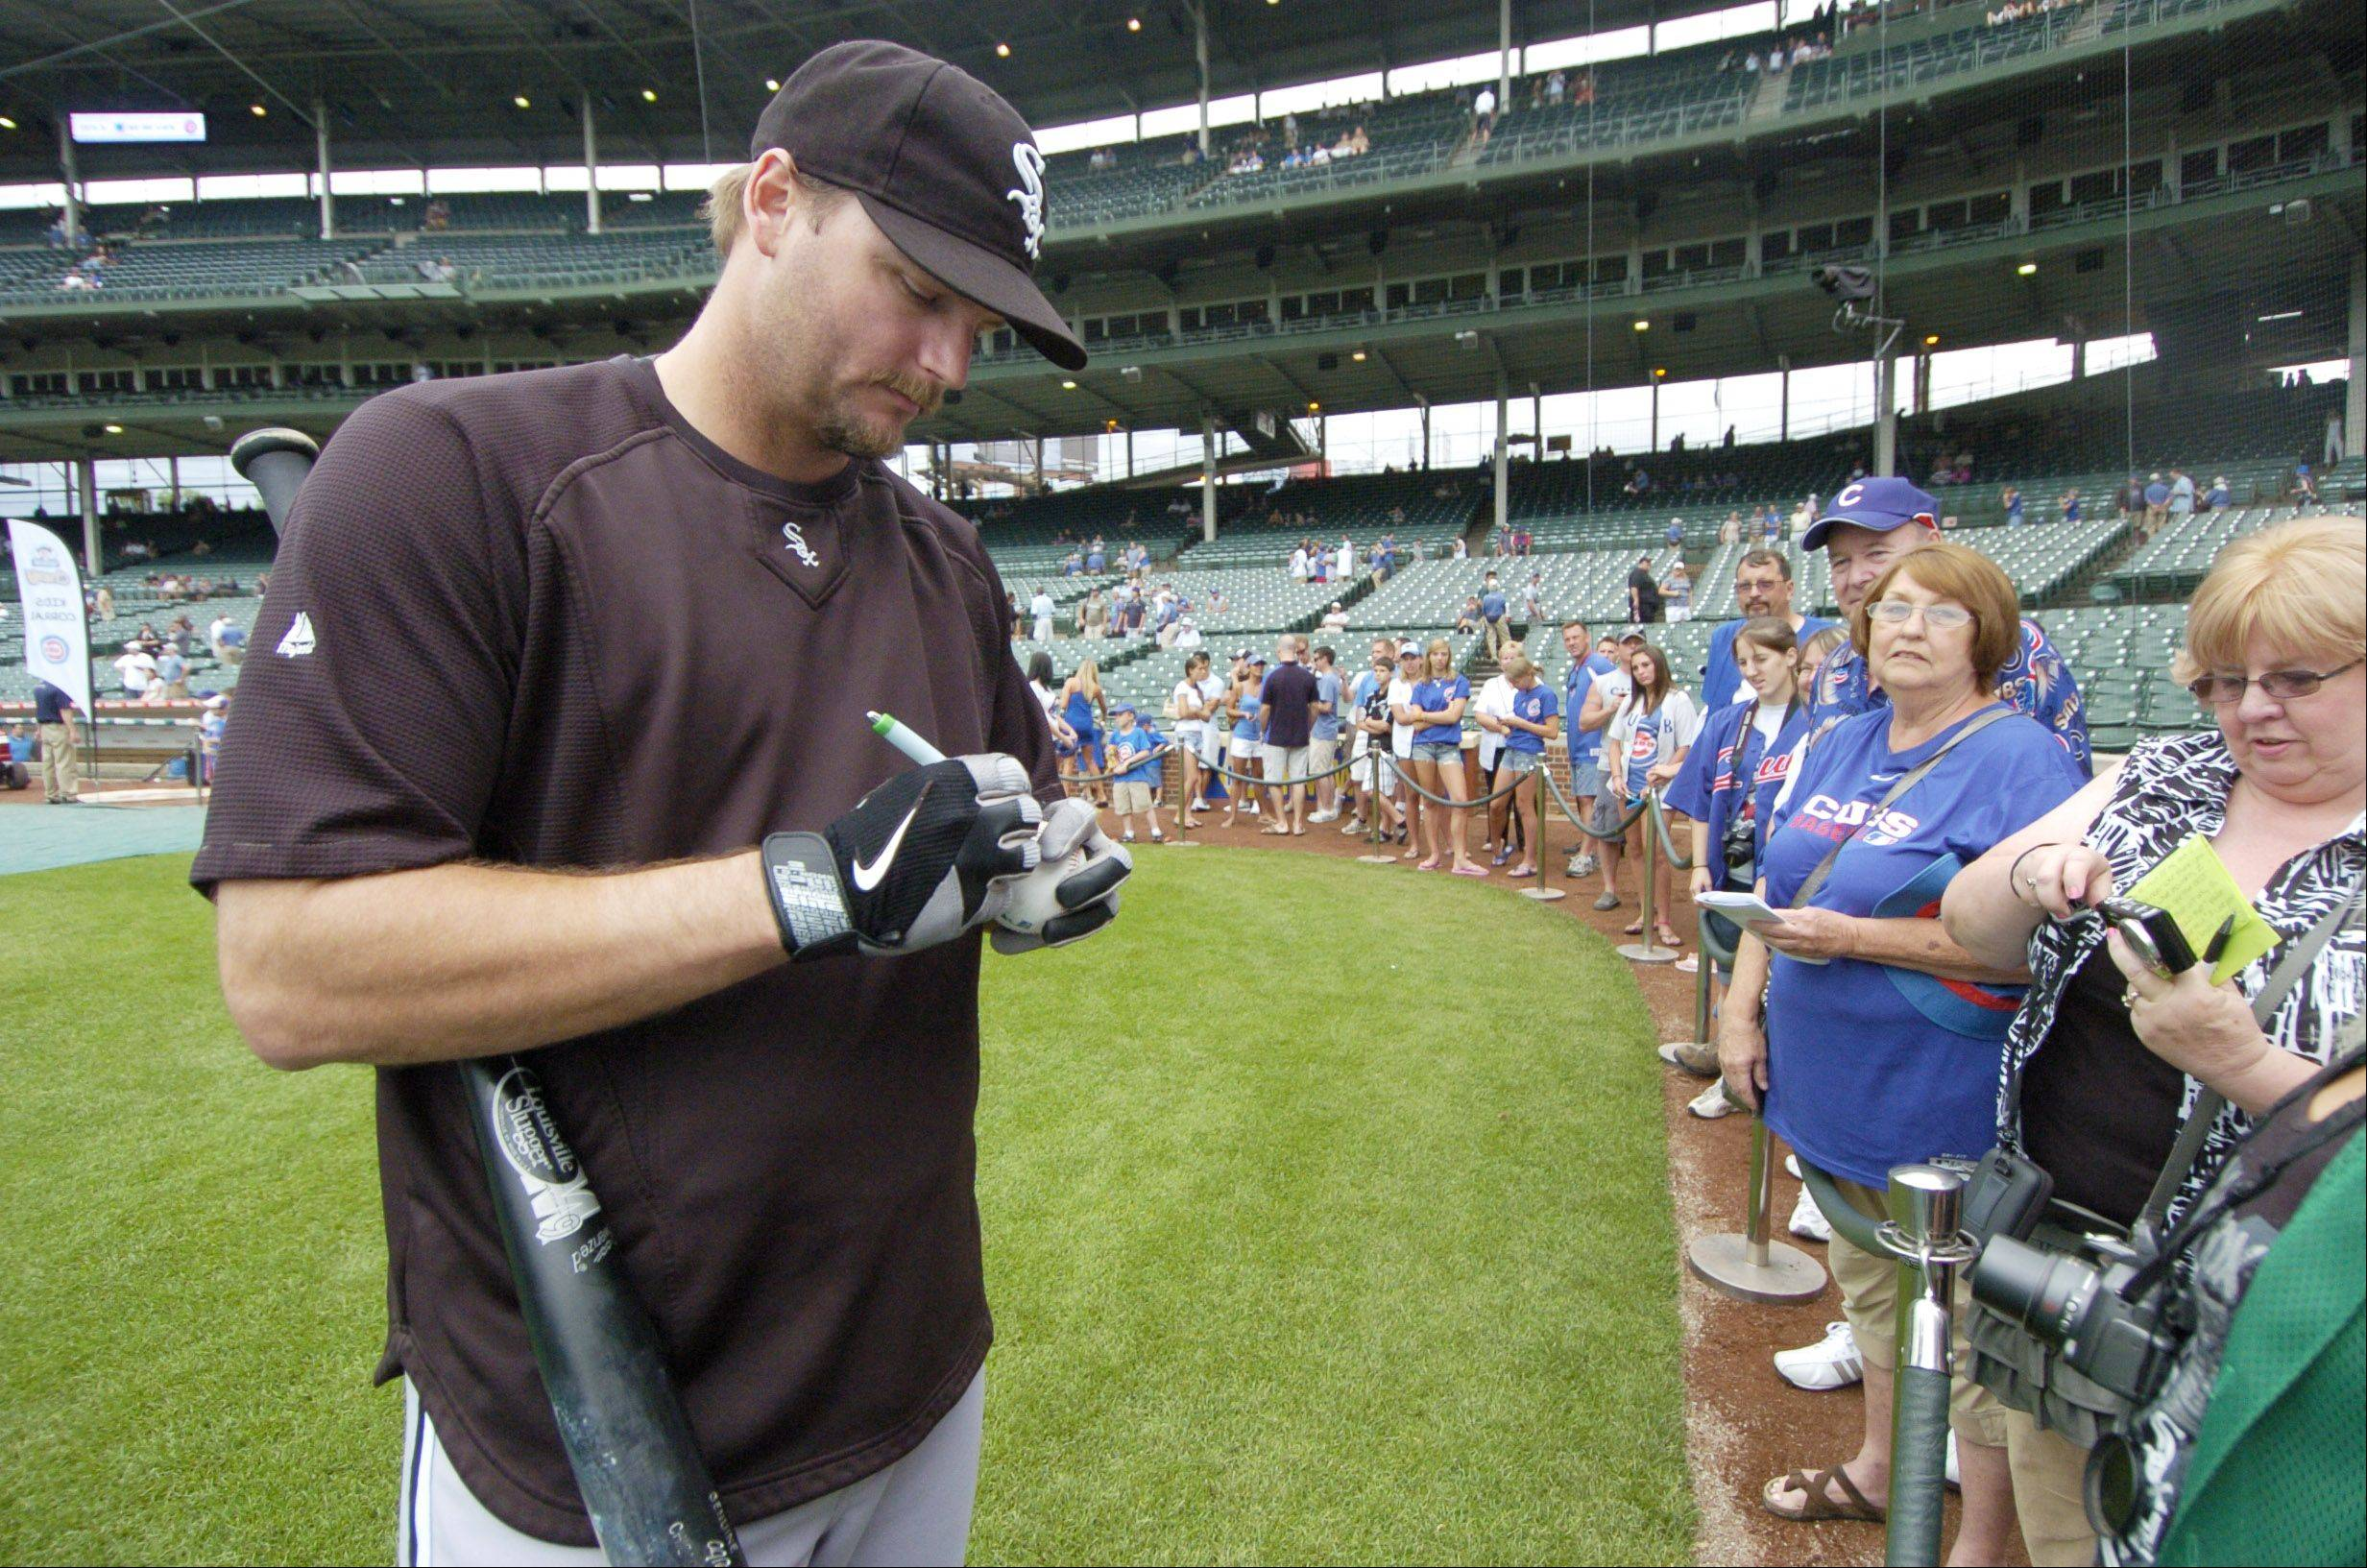 Chicago White Sox catcher A.J. Pierzynski signs autographs for a group that includes mostly Cubs fans at Wrigley Field Friday.